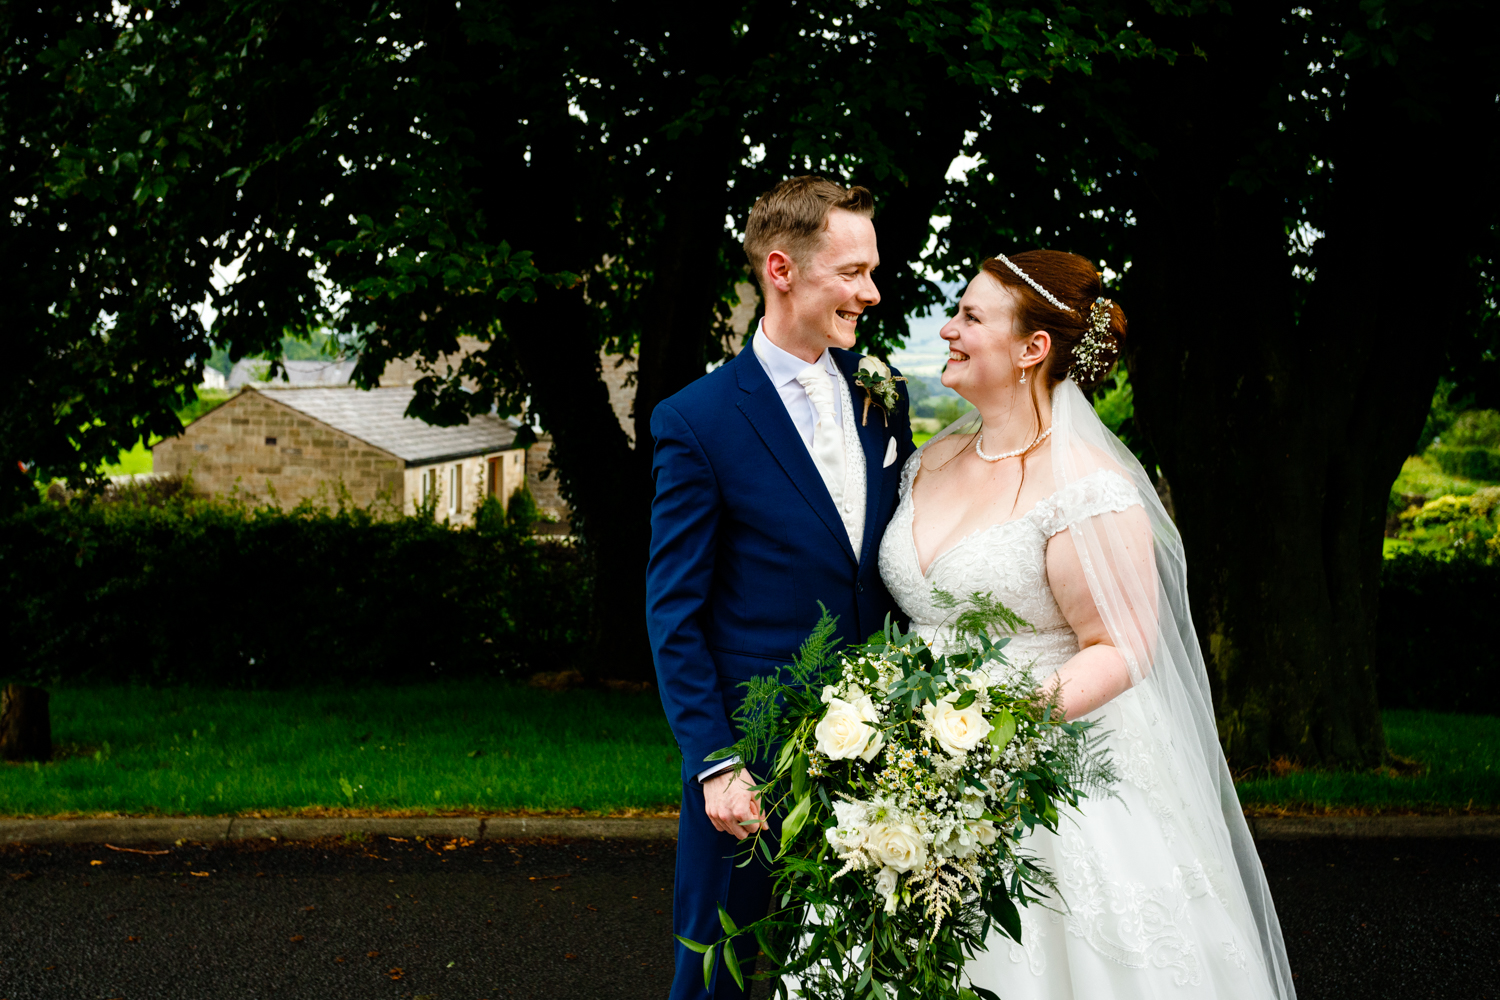 Lancashire-wedding-photographer-adele-and-alex-119.jpg